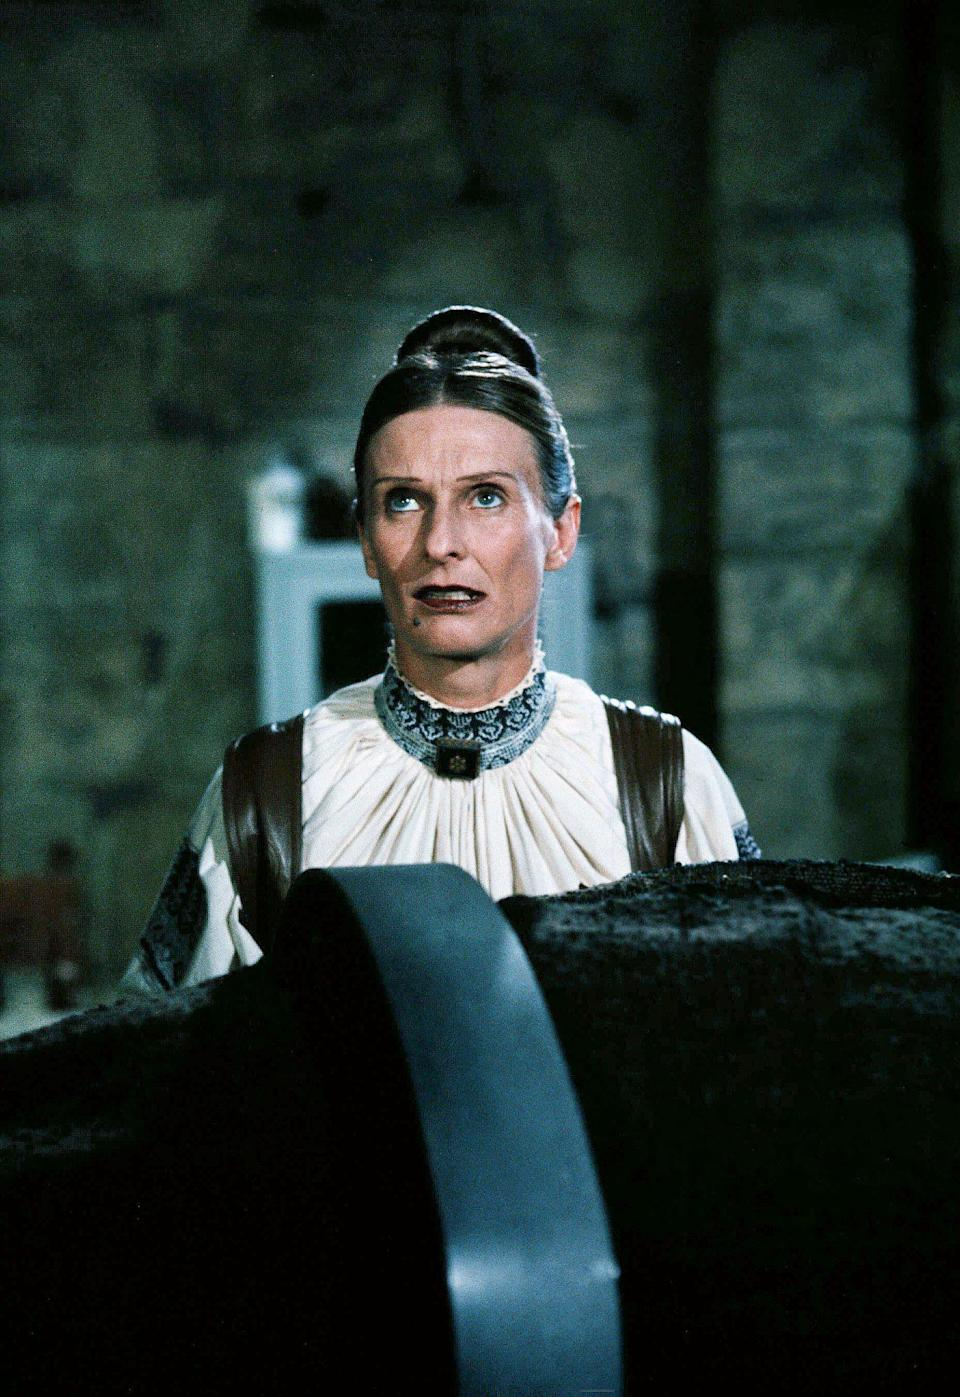 <p>Funnyman Mel Brooks relied on Leachman's comedic skills in three of his films, including 1974's <em>Young Frankenstein</em> (pictured), <em>High Anxiety </em>and <em>History of the World: Part I</em><em>. </em>She also appeared on his 1989 TV series, <em>The Nutt House.</em></p>